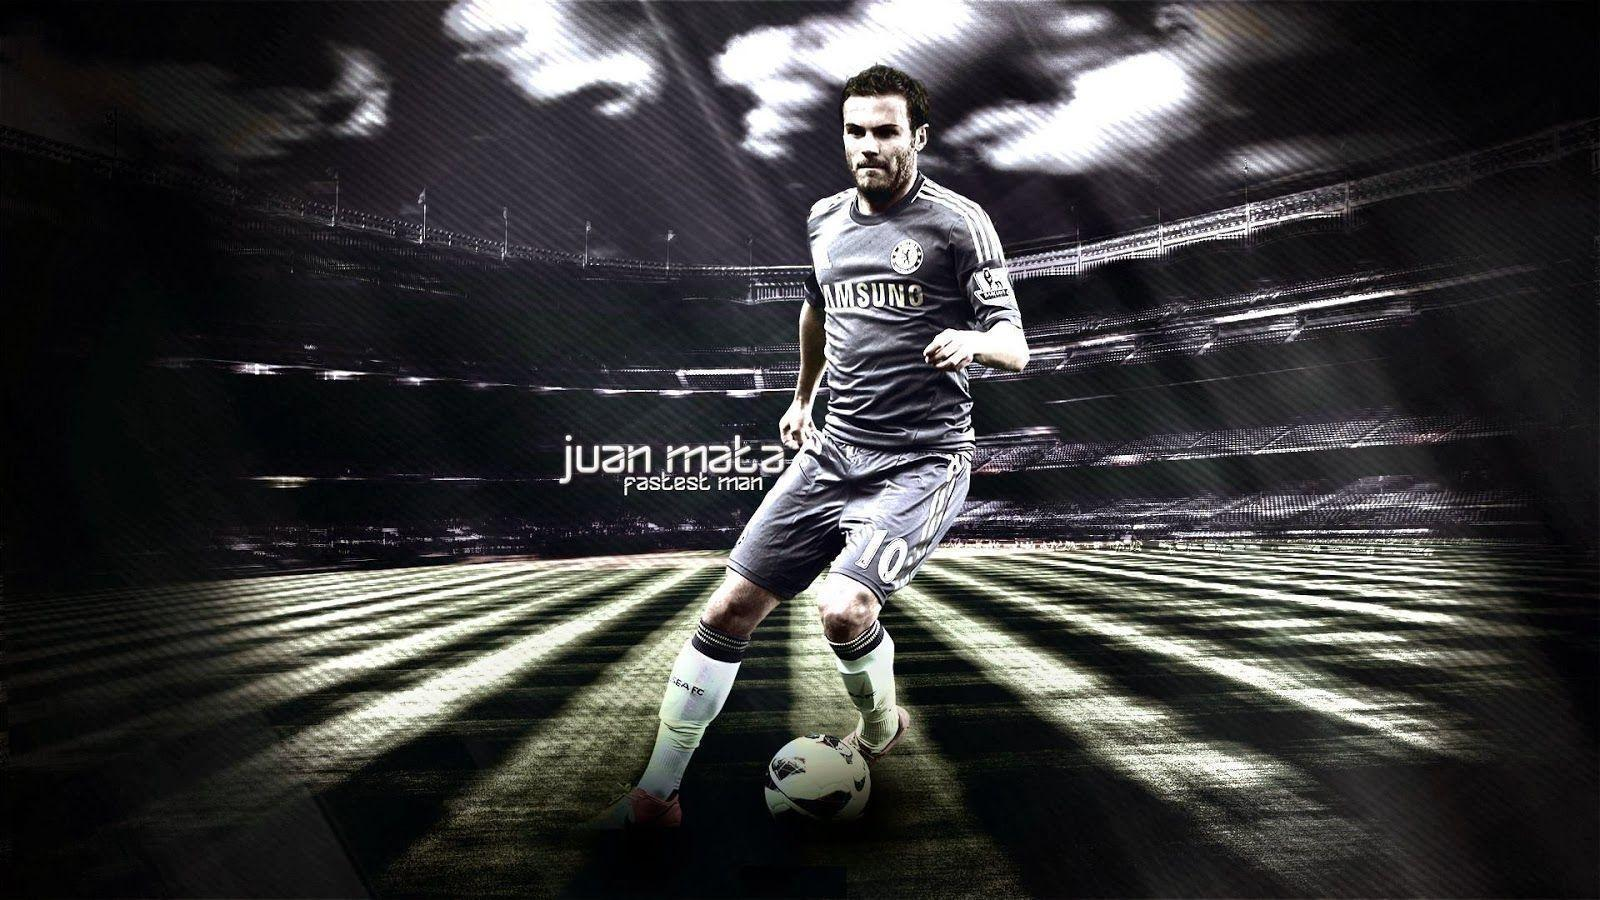 Words Celebrities Wallpapers: Juan Mata 2014 HD Wallpapers Collection